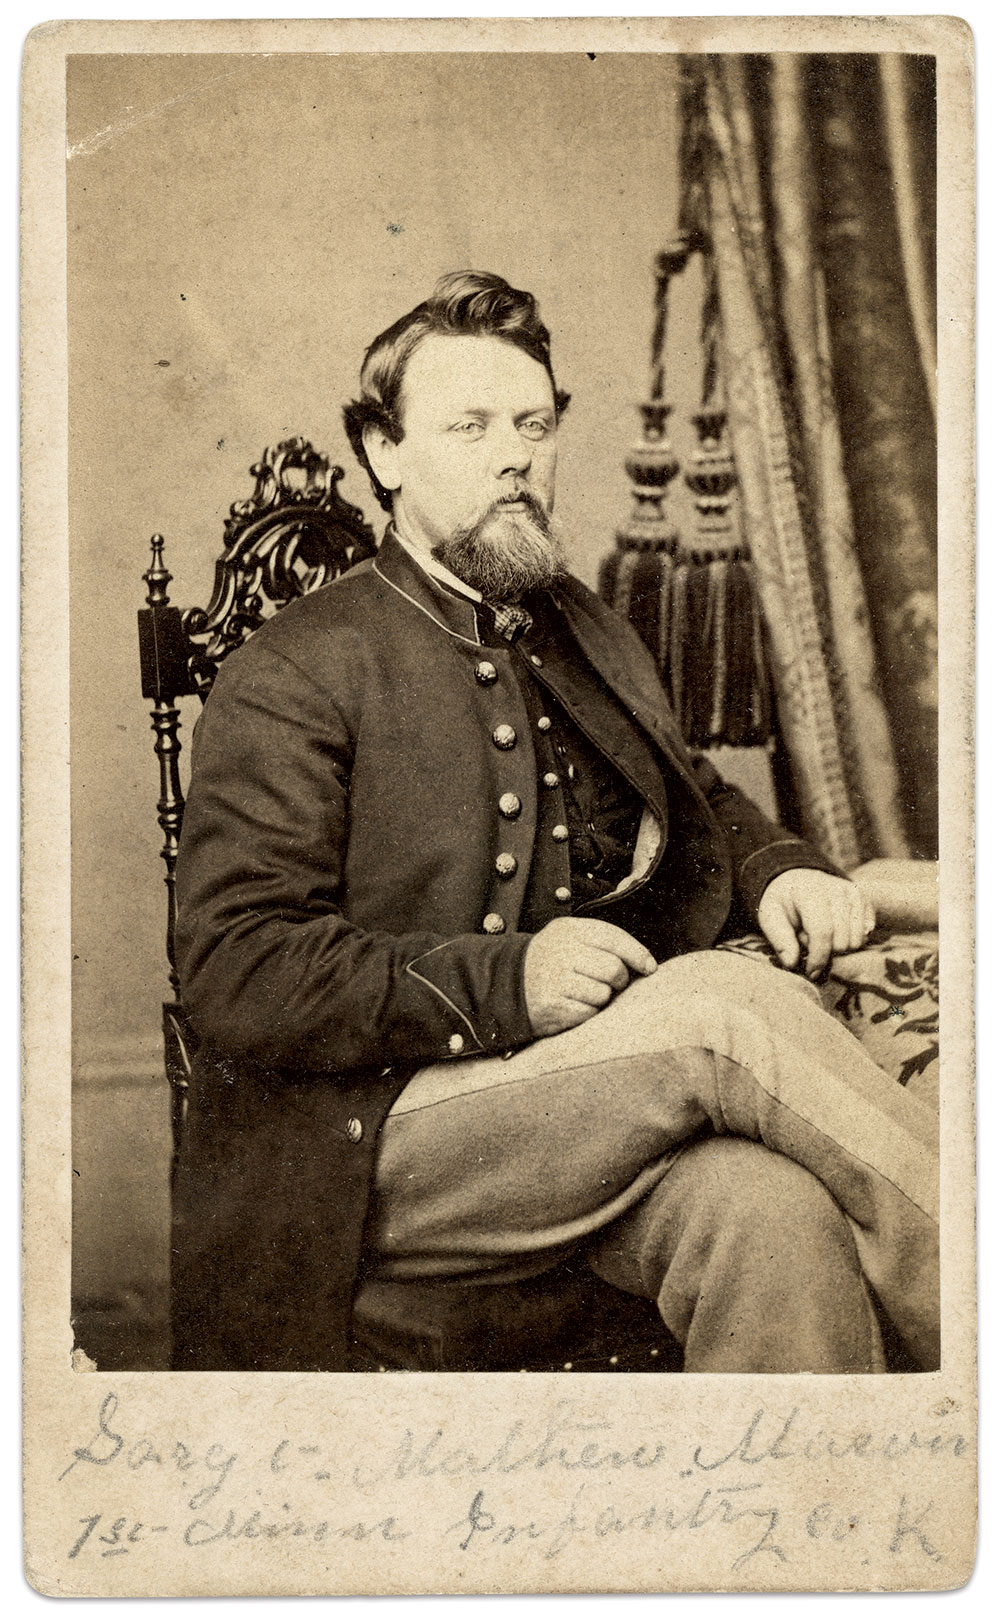 Carte de visite by Reynolds & Rider of Chicago, Ill. Charles Joyce Collection.